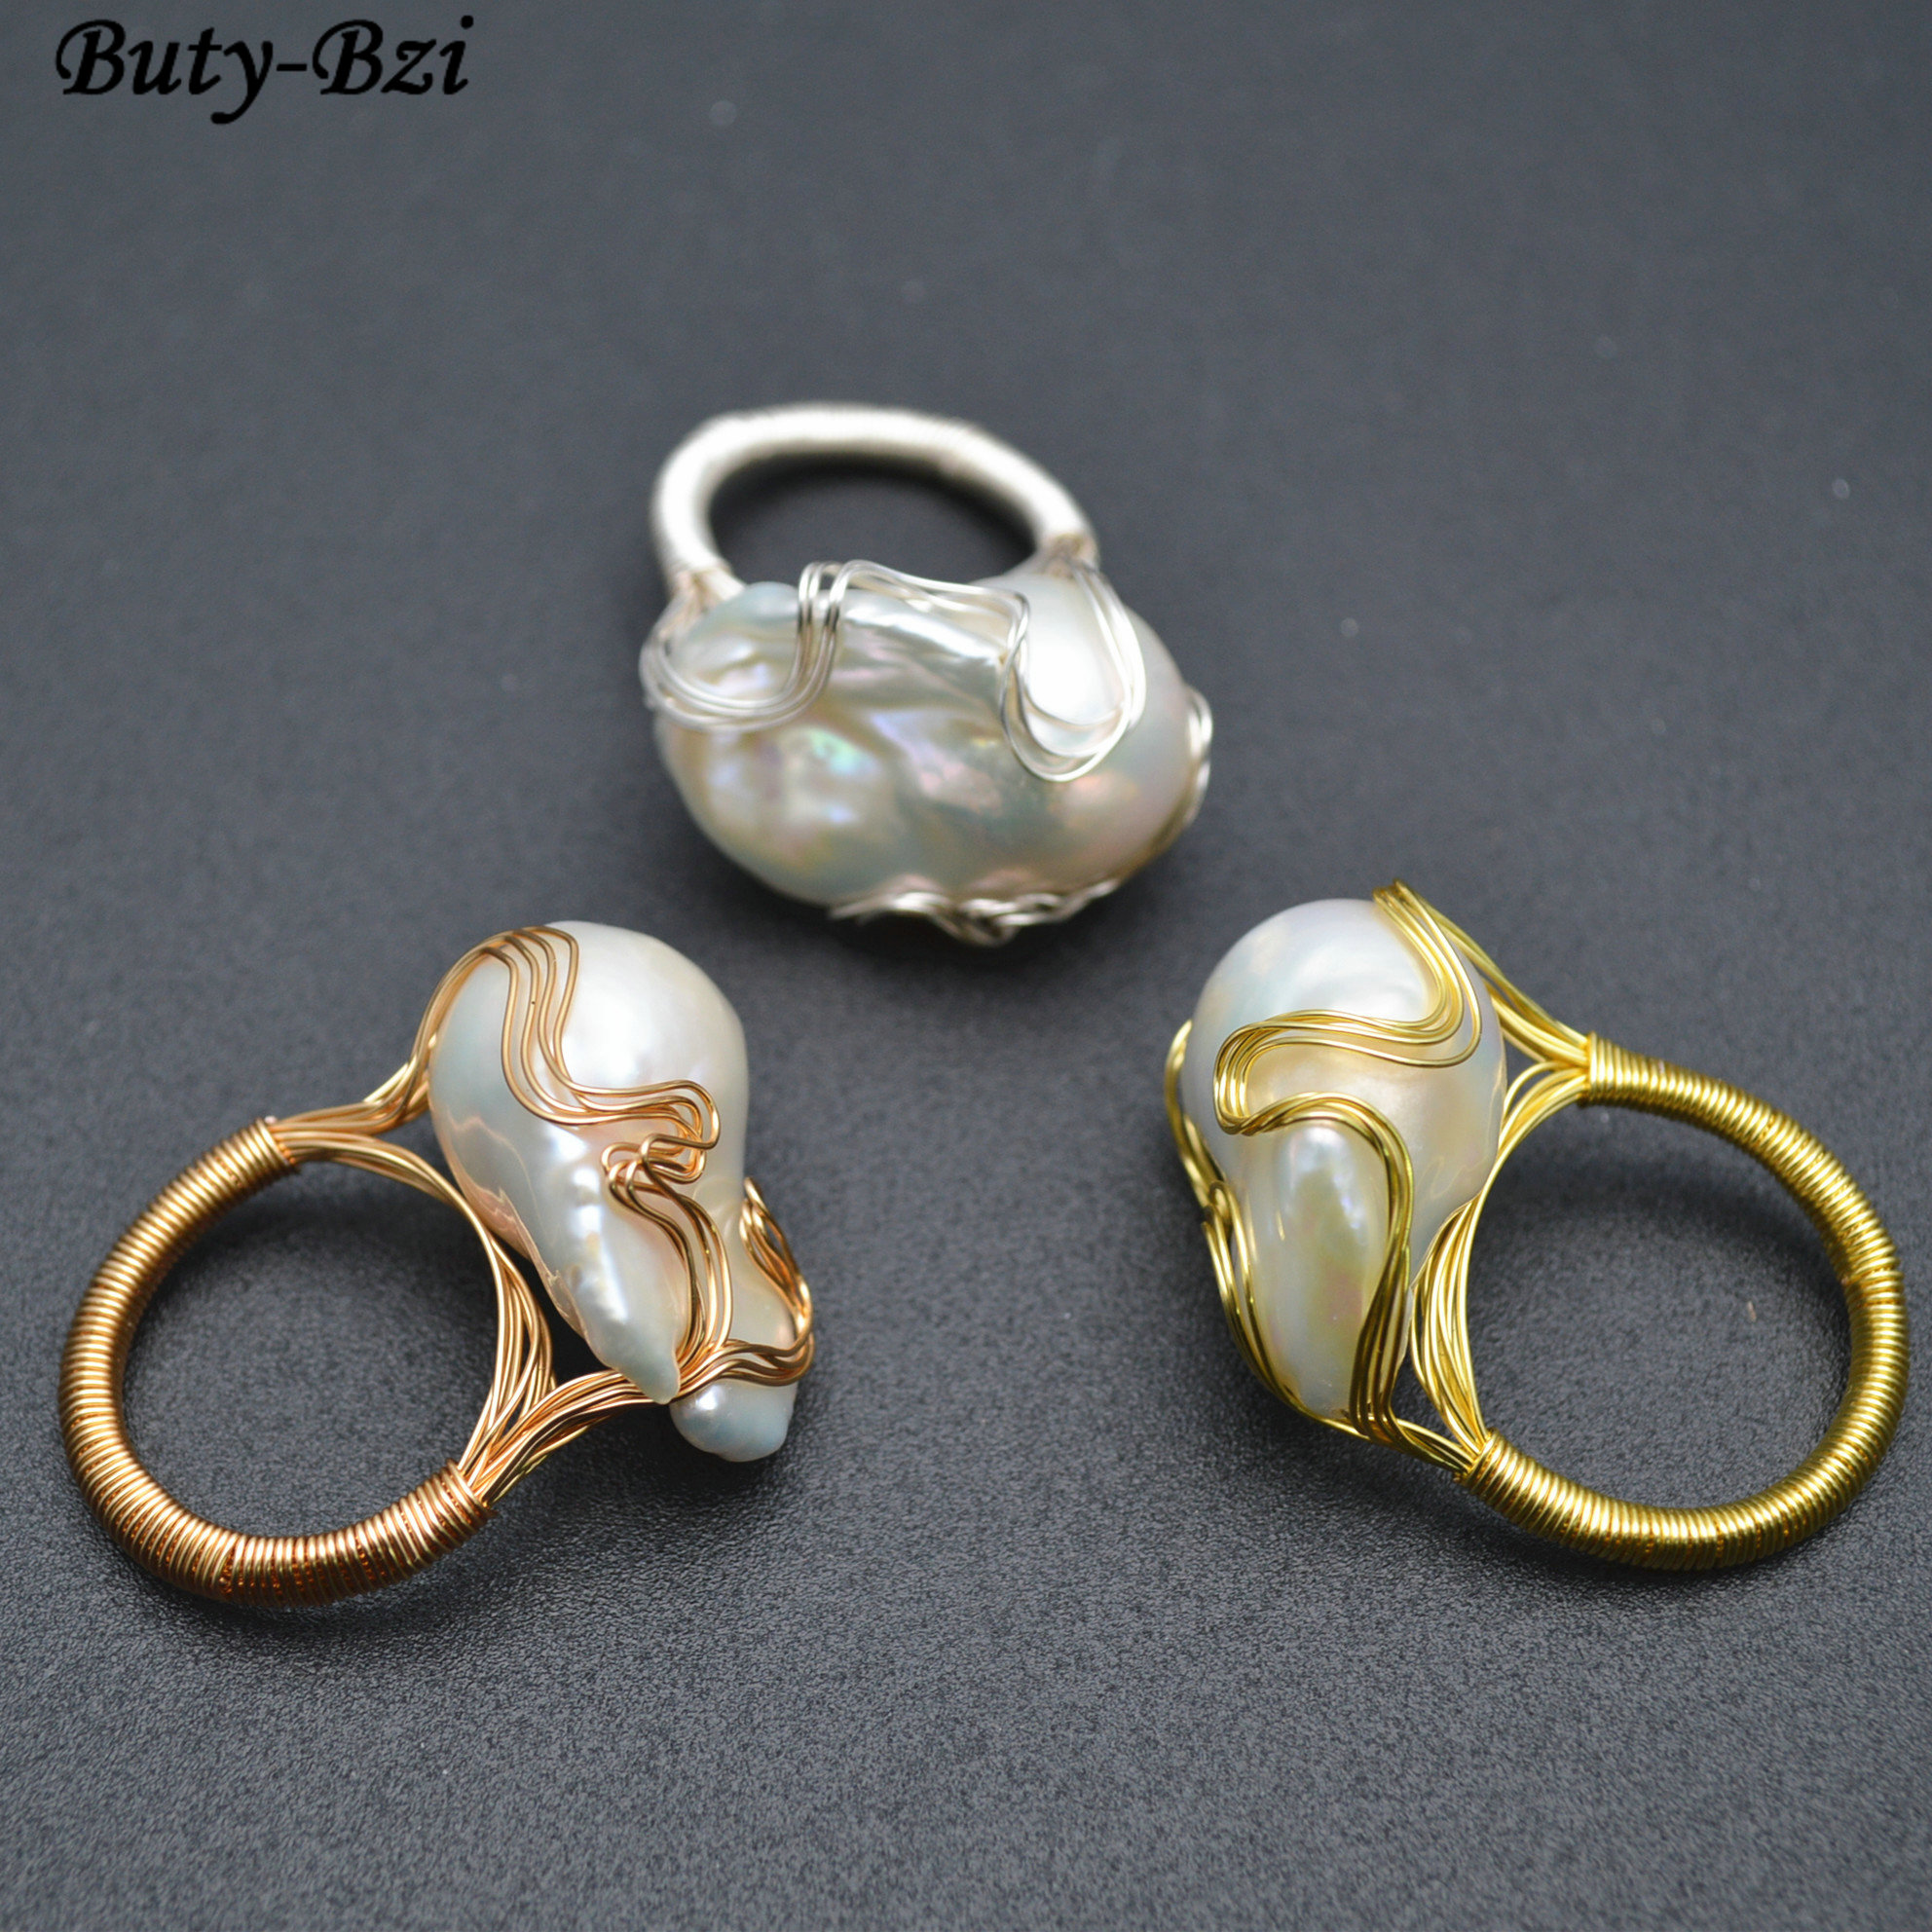 1pc High Quality Handmade Natural Fresh Water White Pearl Big Baroque Beads Wire Wrapped Rings Fashion Woman Party Jewelry